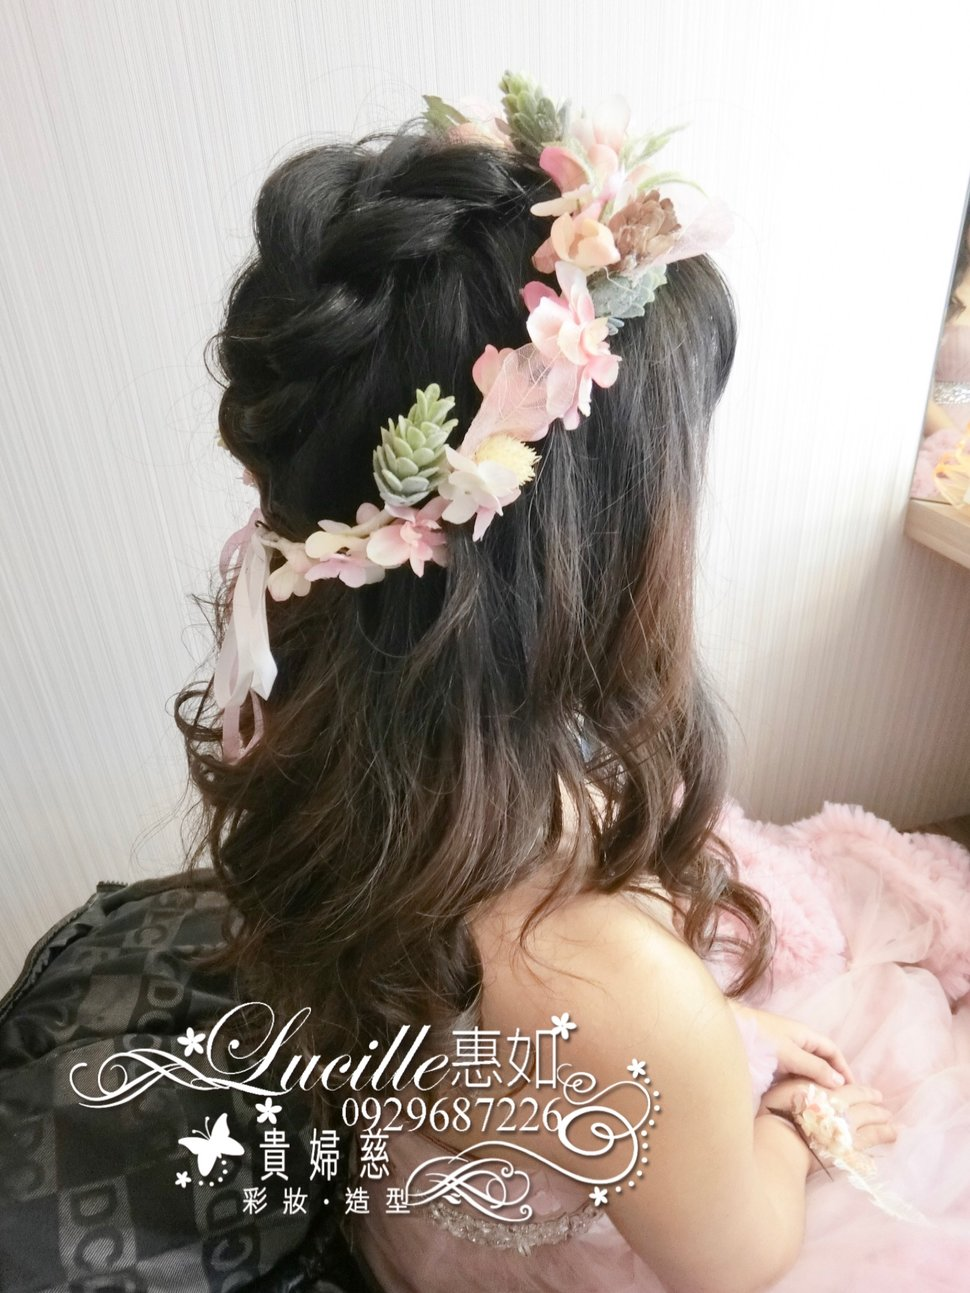 A6983F73-DEF7-4A67-B50D-E3B475F330B4 - 台北/宜蘭/台中新秘Lucille惠如 - 結婚吧